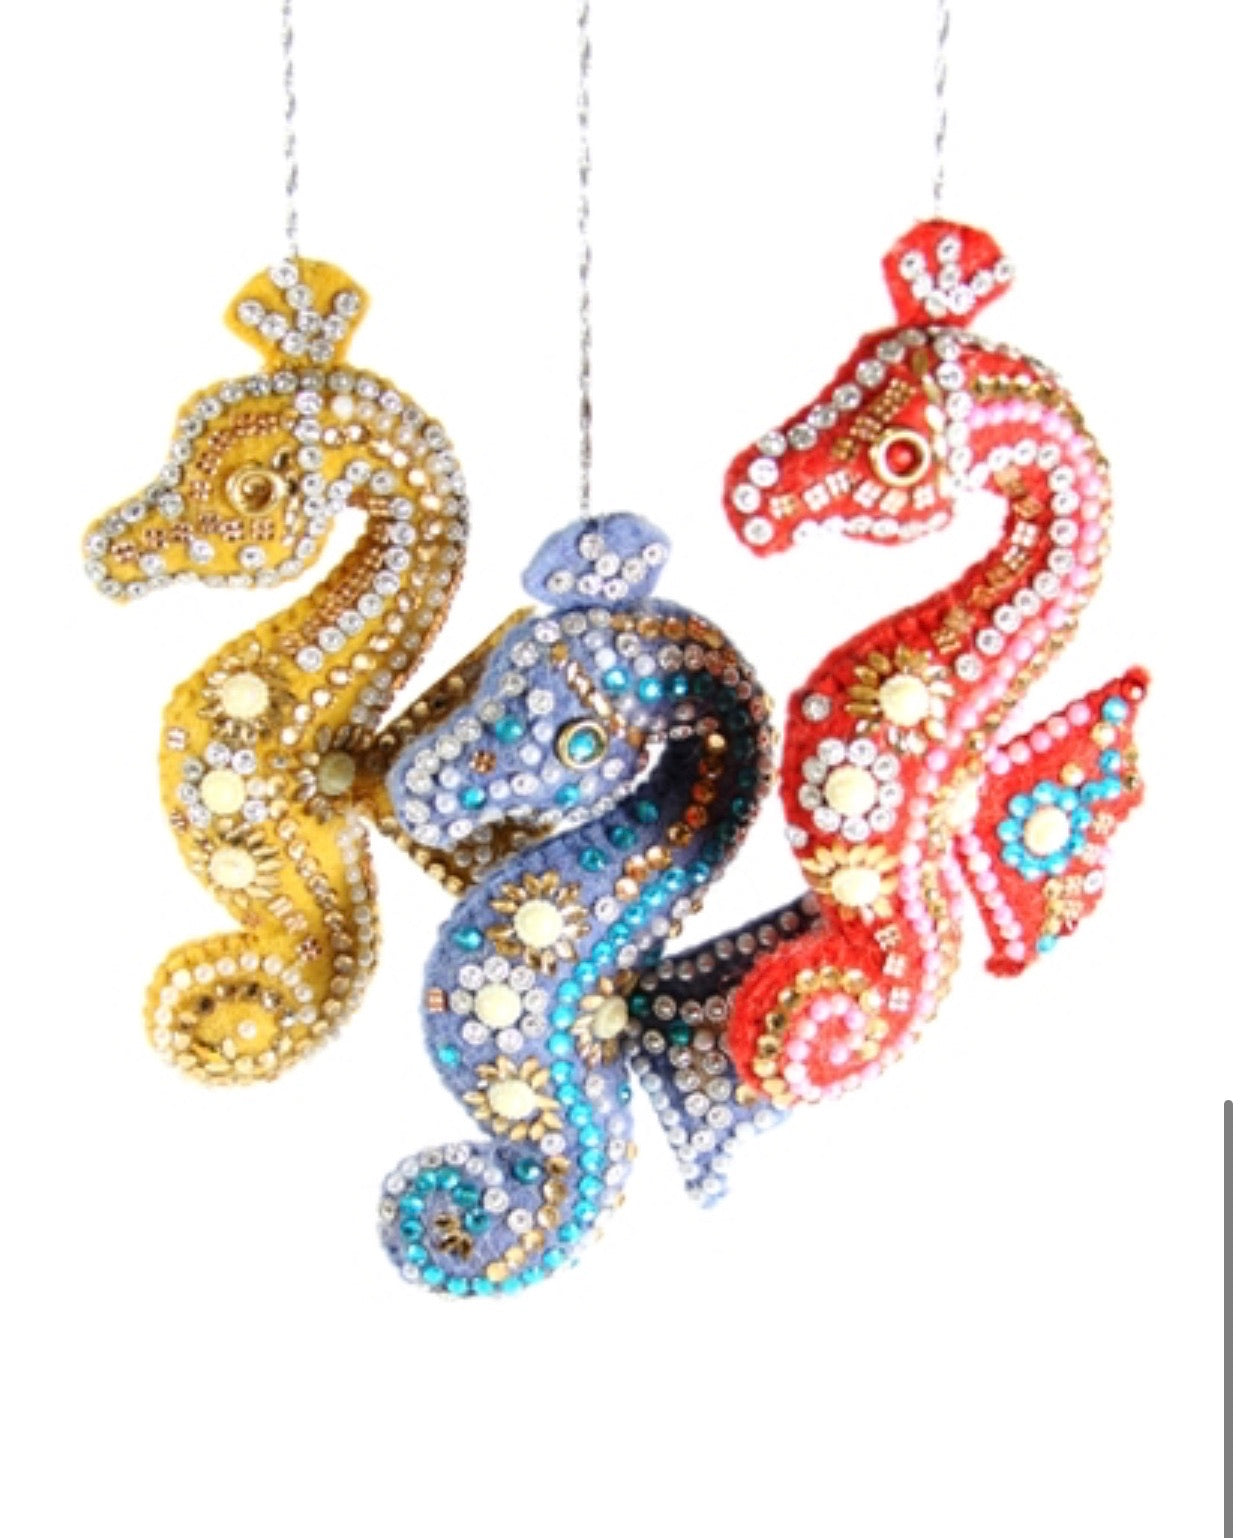 Bedazzled Seahorse Ornament